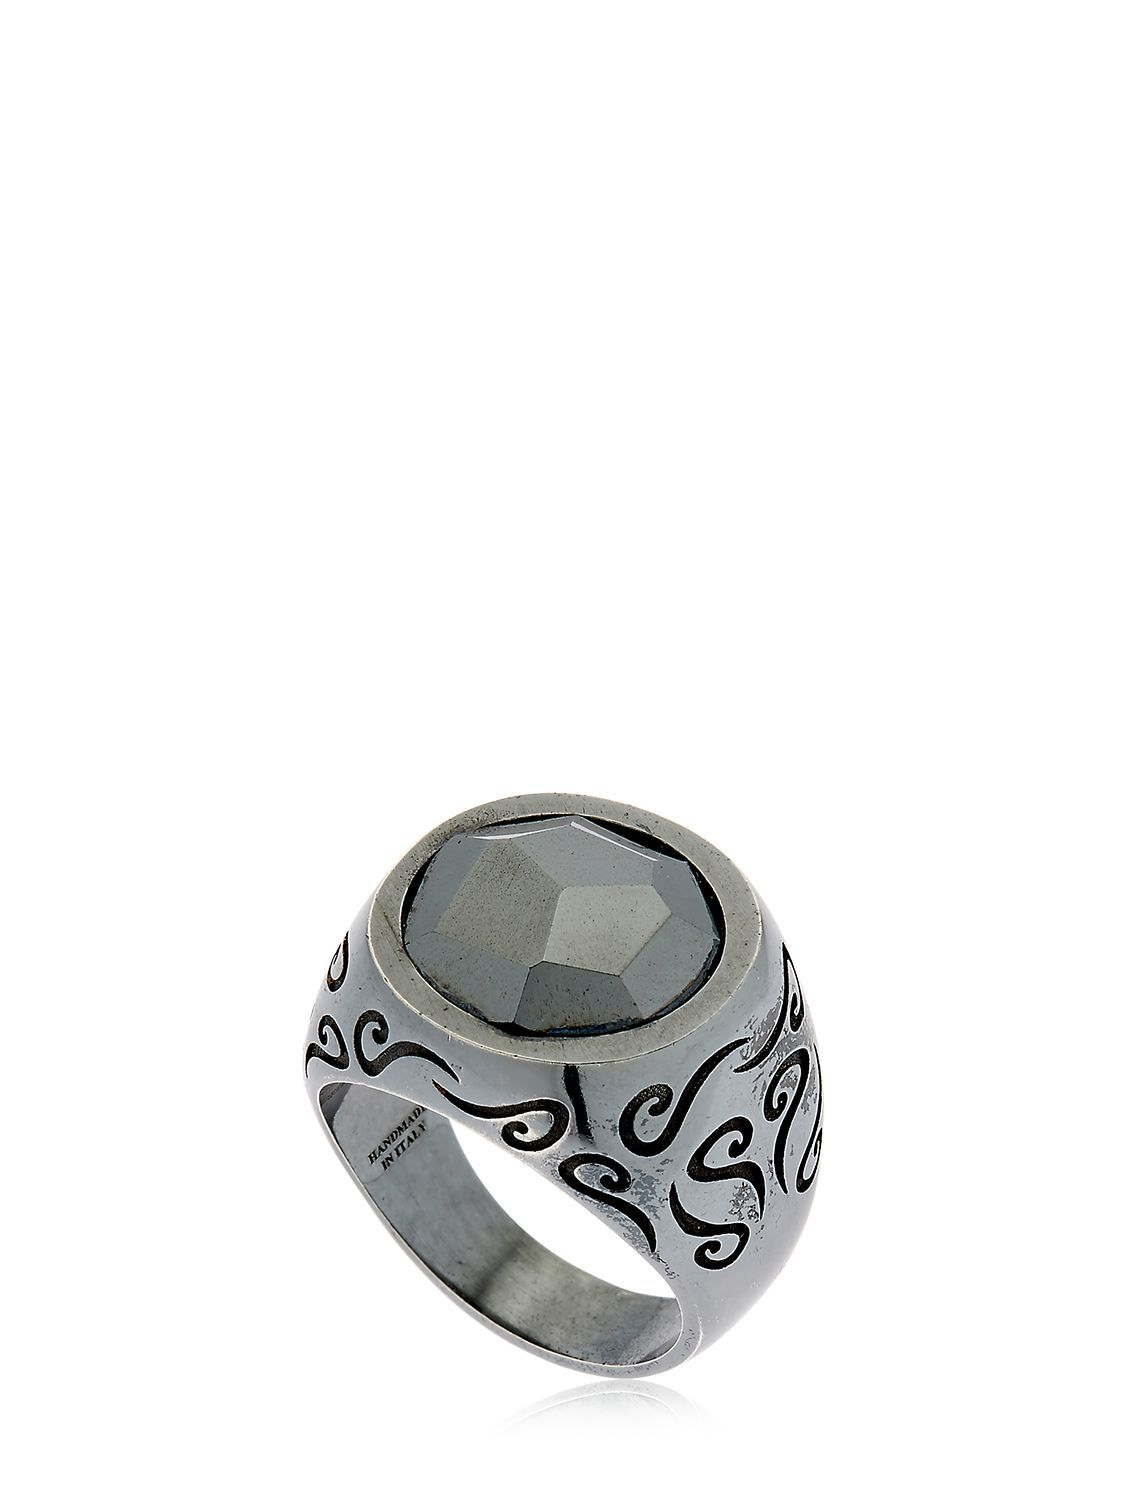 Marco Dal Maso Mens Round Oxidized Silver Ring with Onyx, Size 9.5